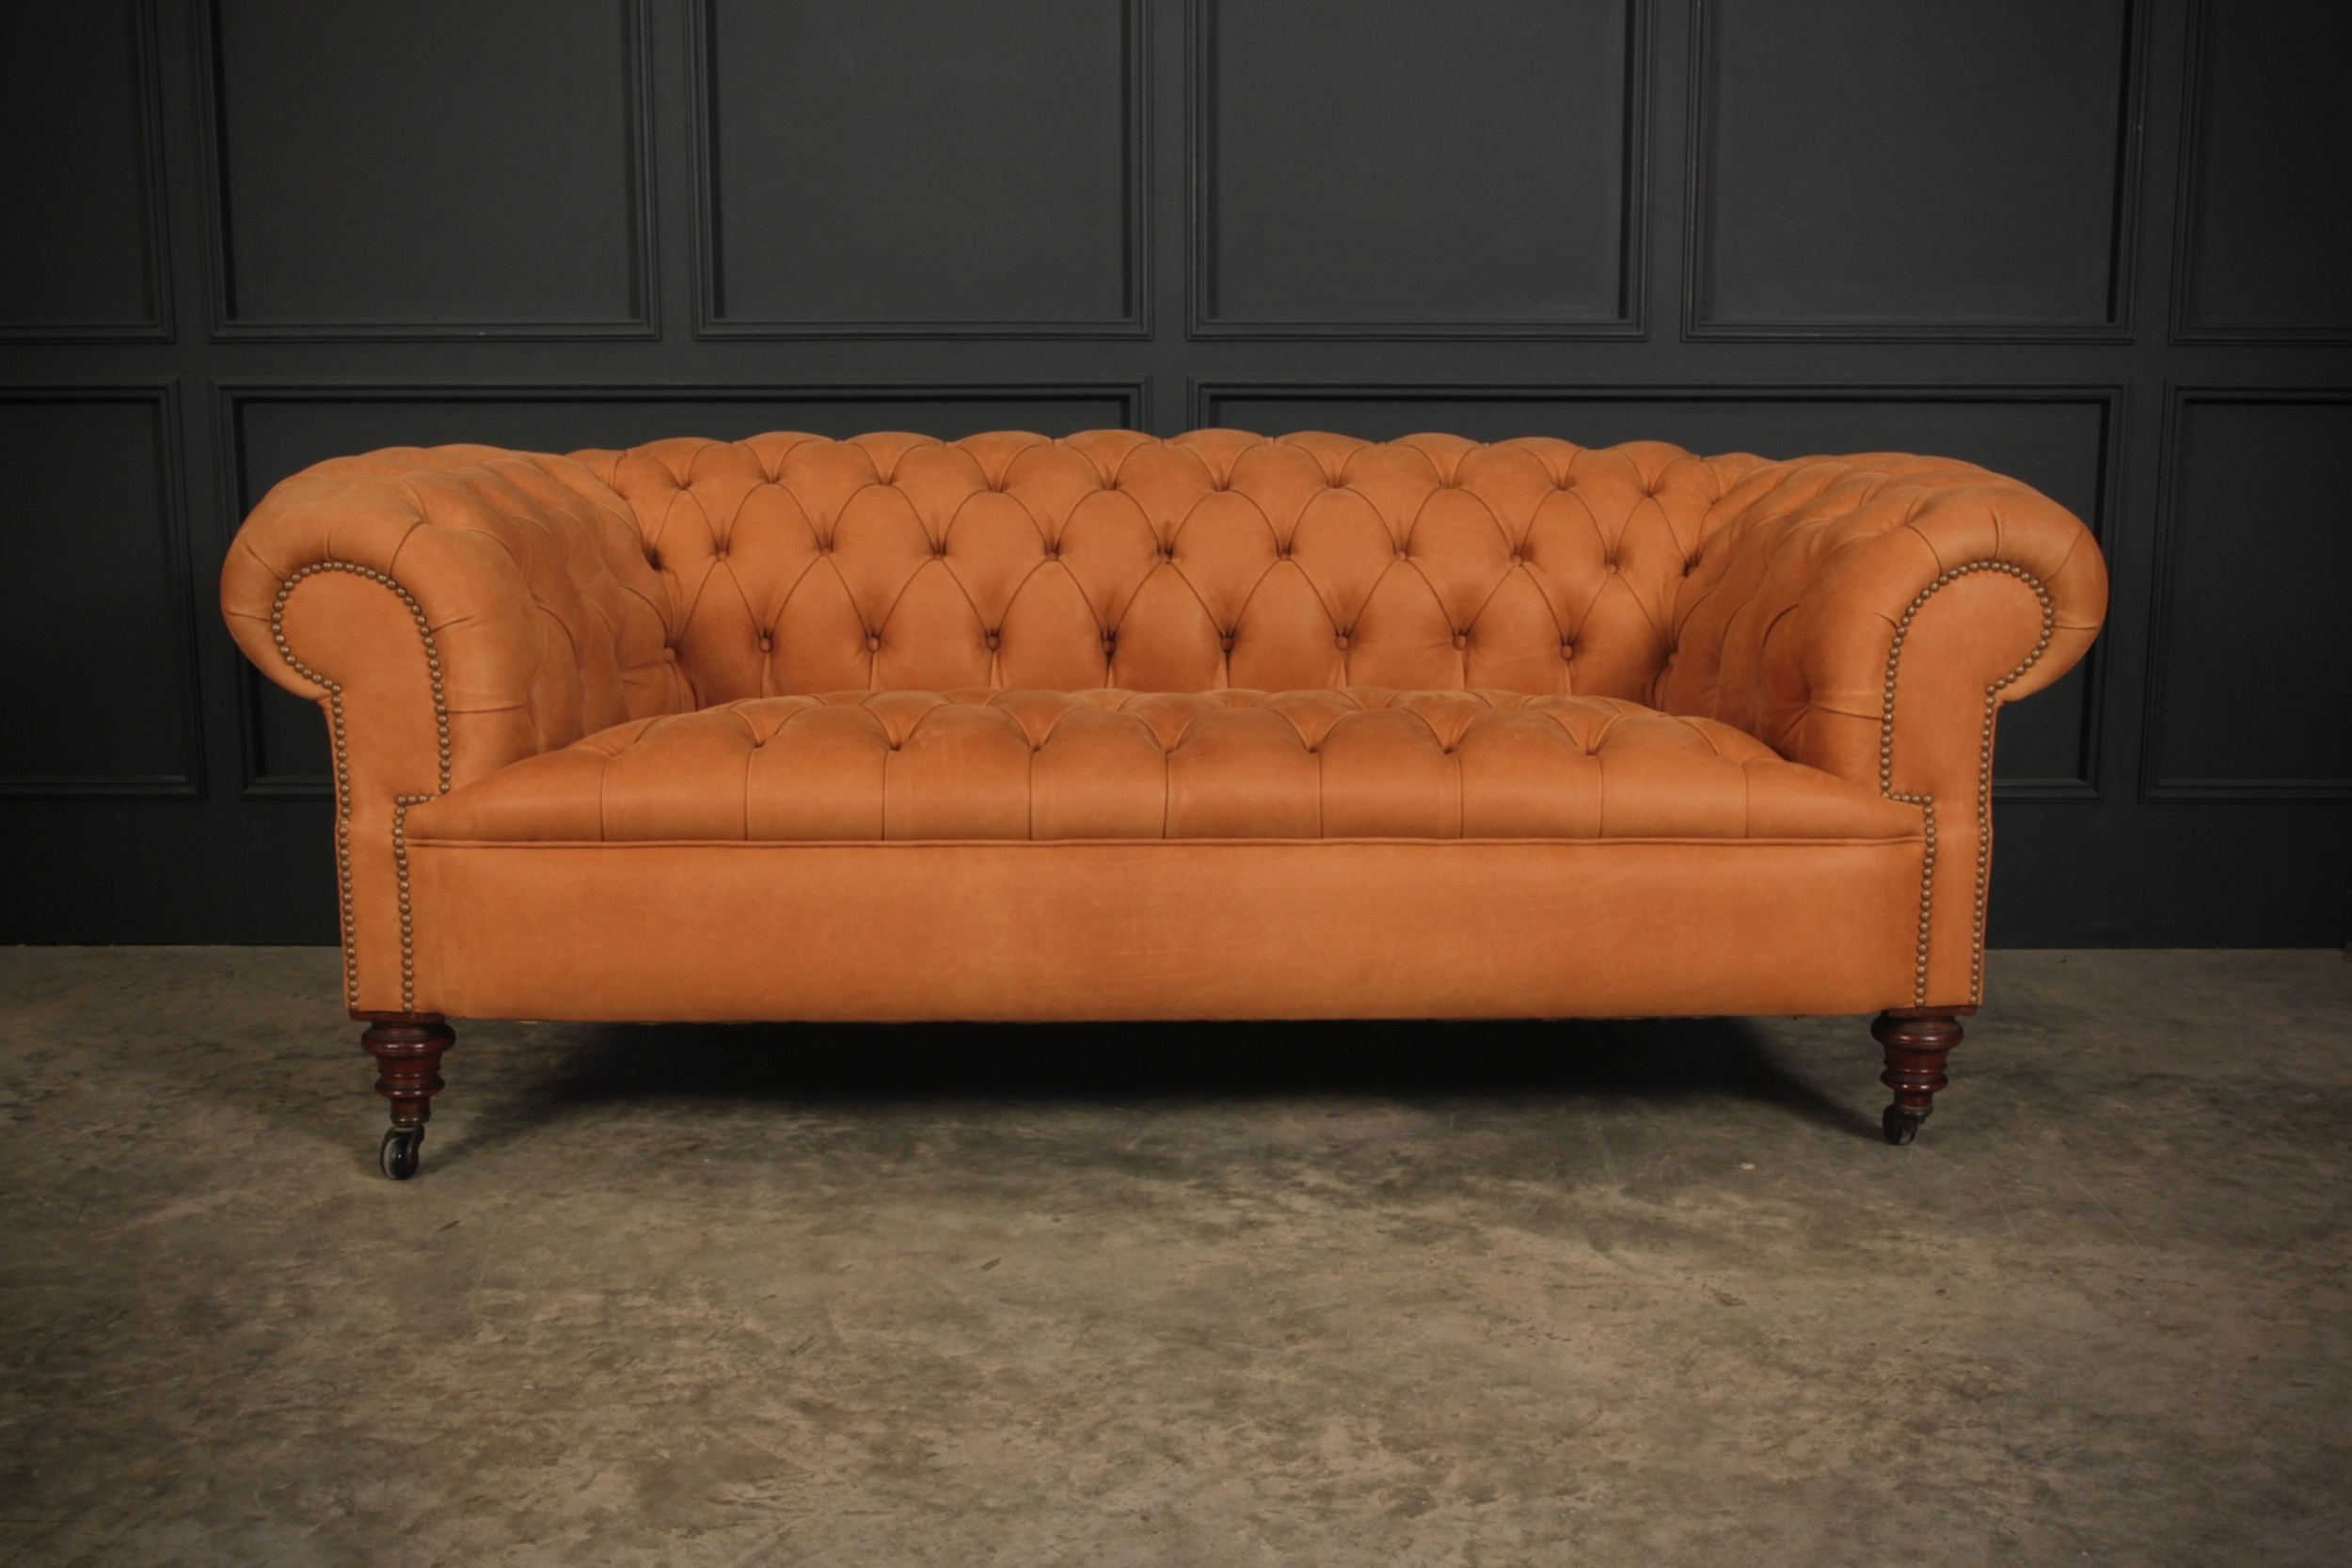 19th century nubuck leather buttoned chesterfield sofa